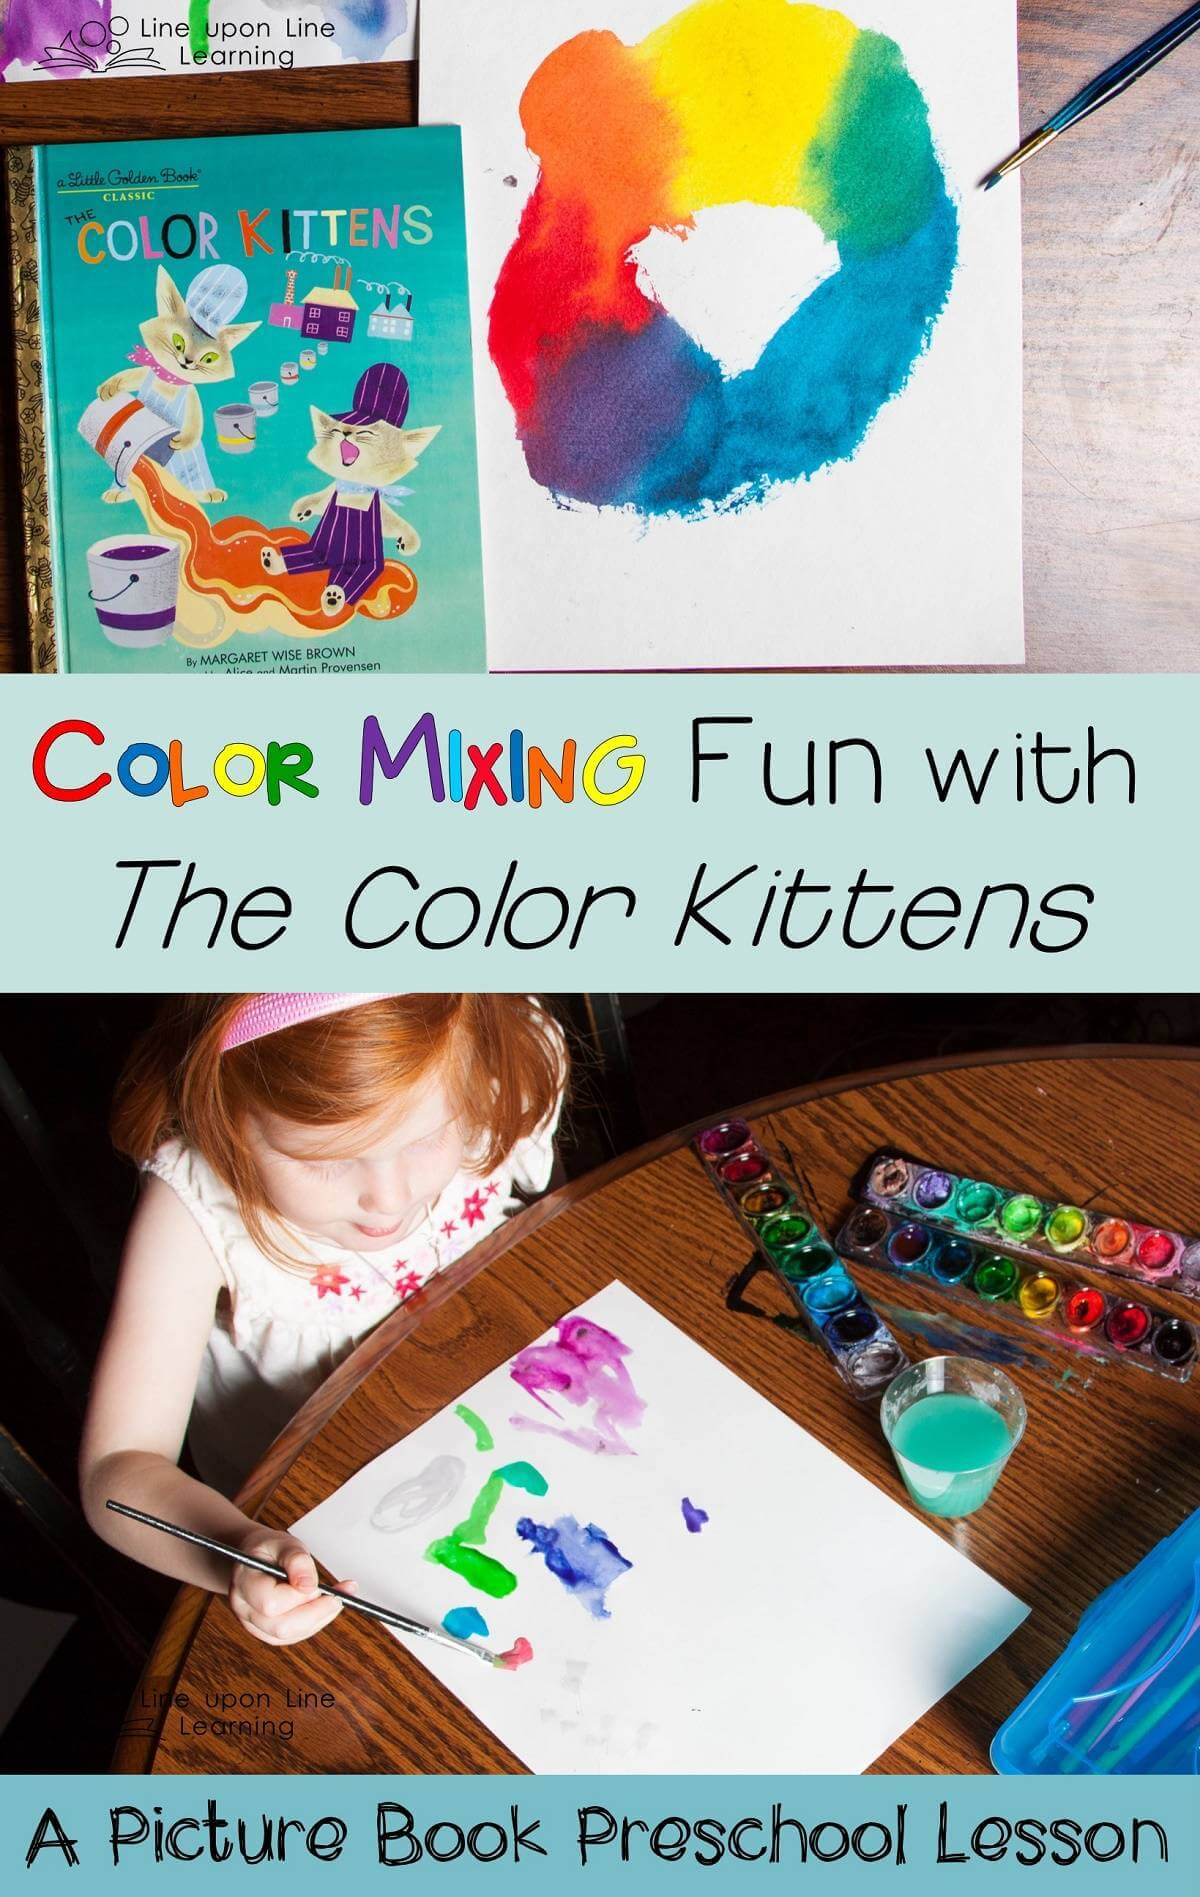 """We practiced mixing our own colors after reading The Color Kittens. Then we painted our own pictures with """"all the colors in the world."""""""